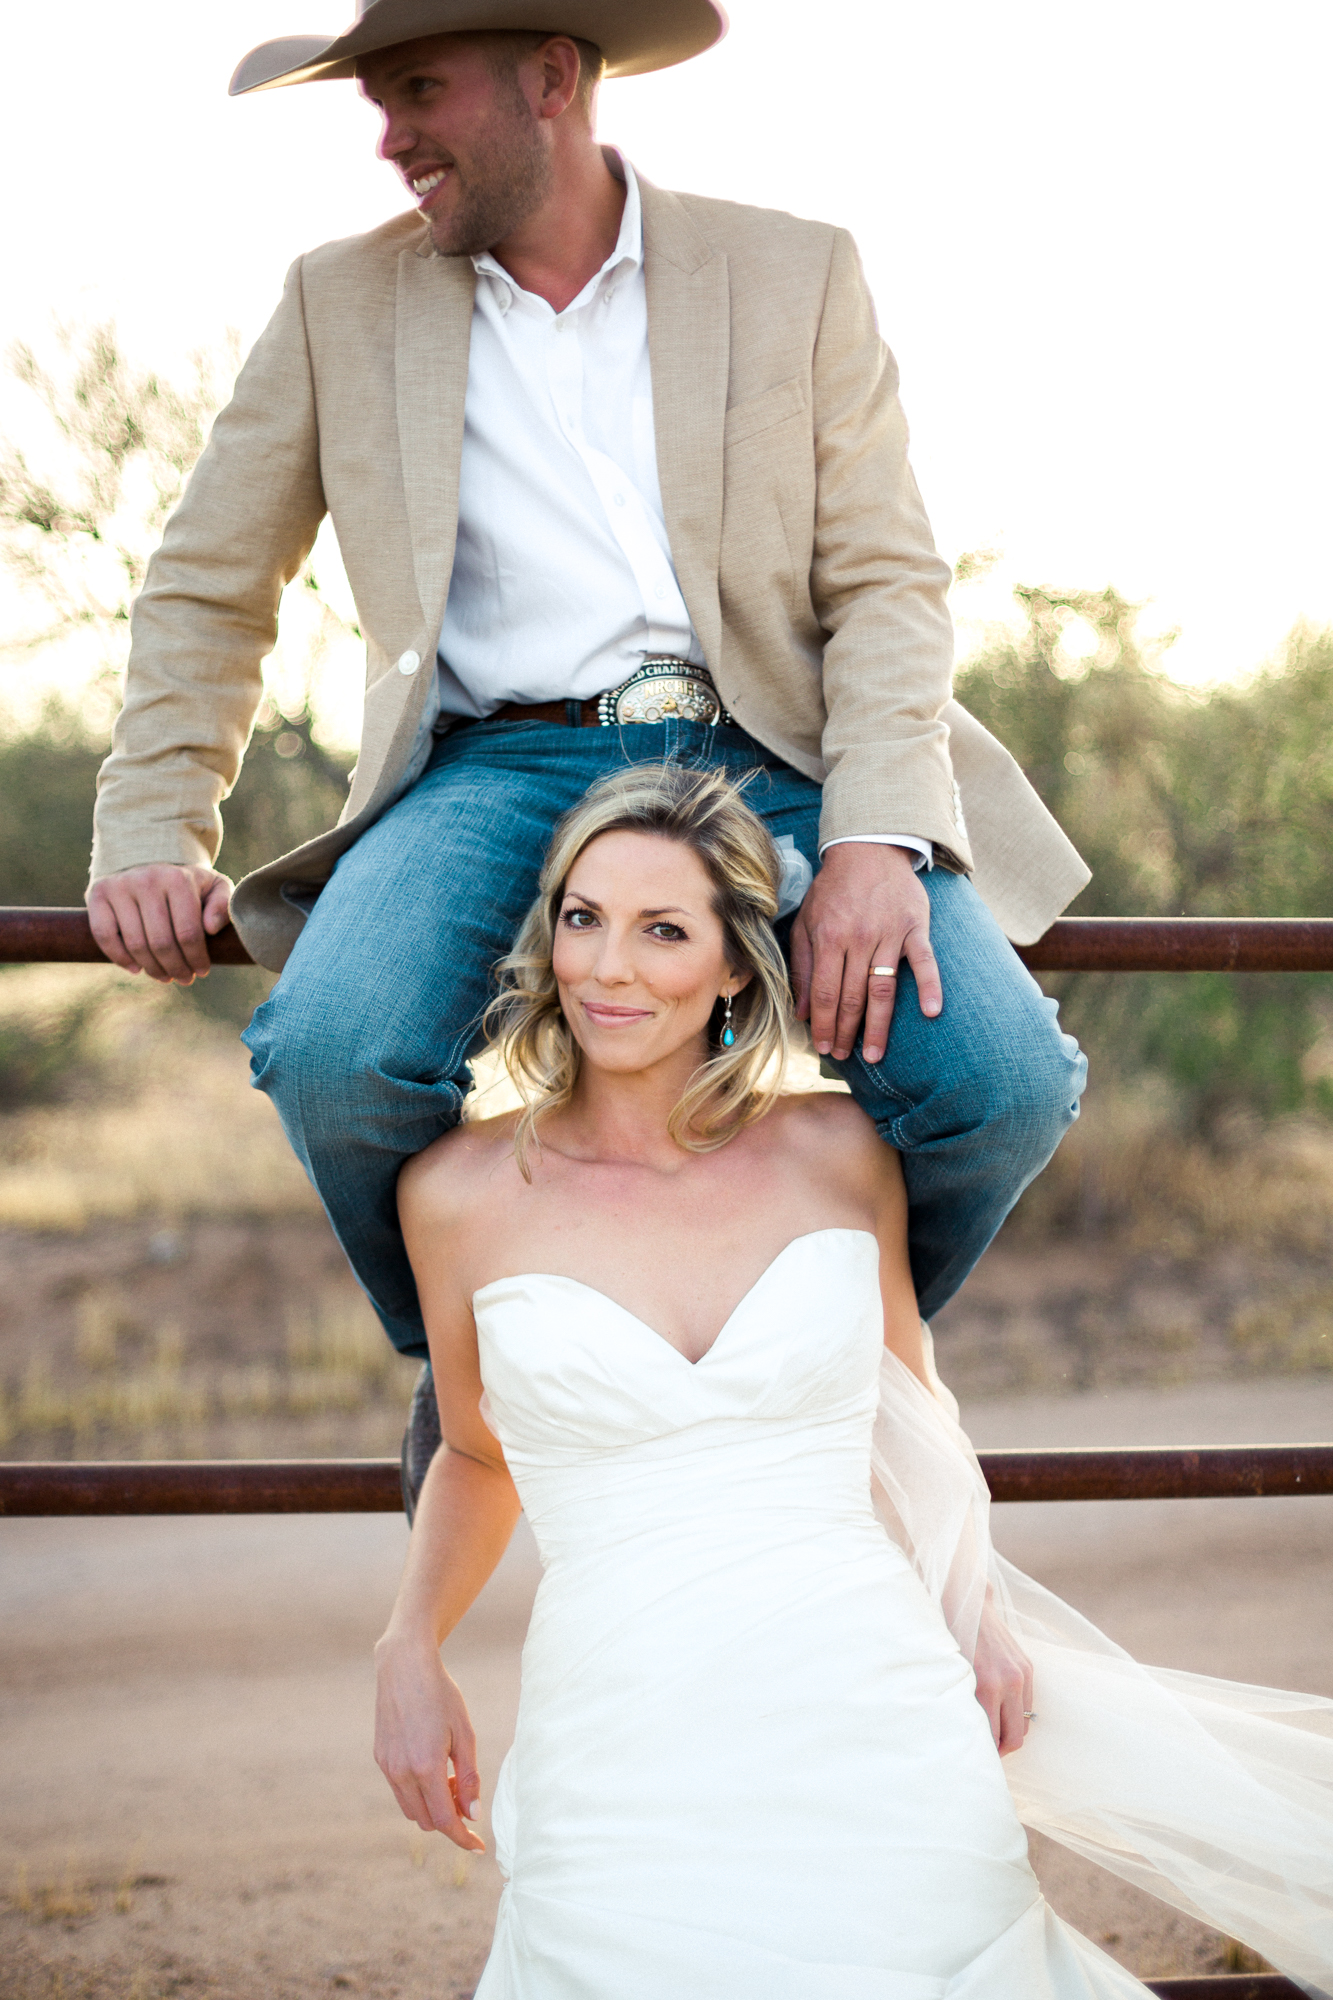 Kiva and Grant - Wed - Scottsdale, AZ - Desert Foothills Weddings and Events - K. Stoddard Photography (3 of 4).jpg